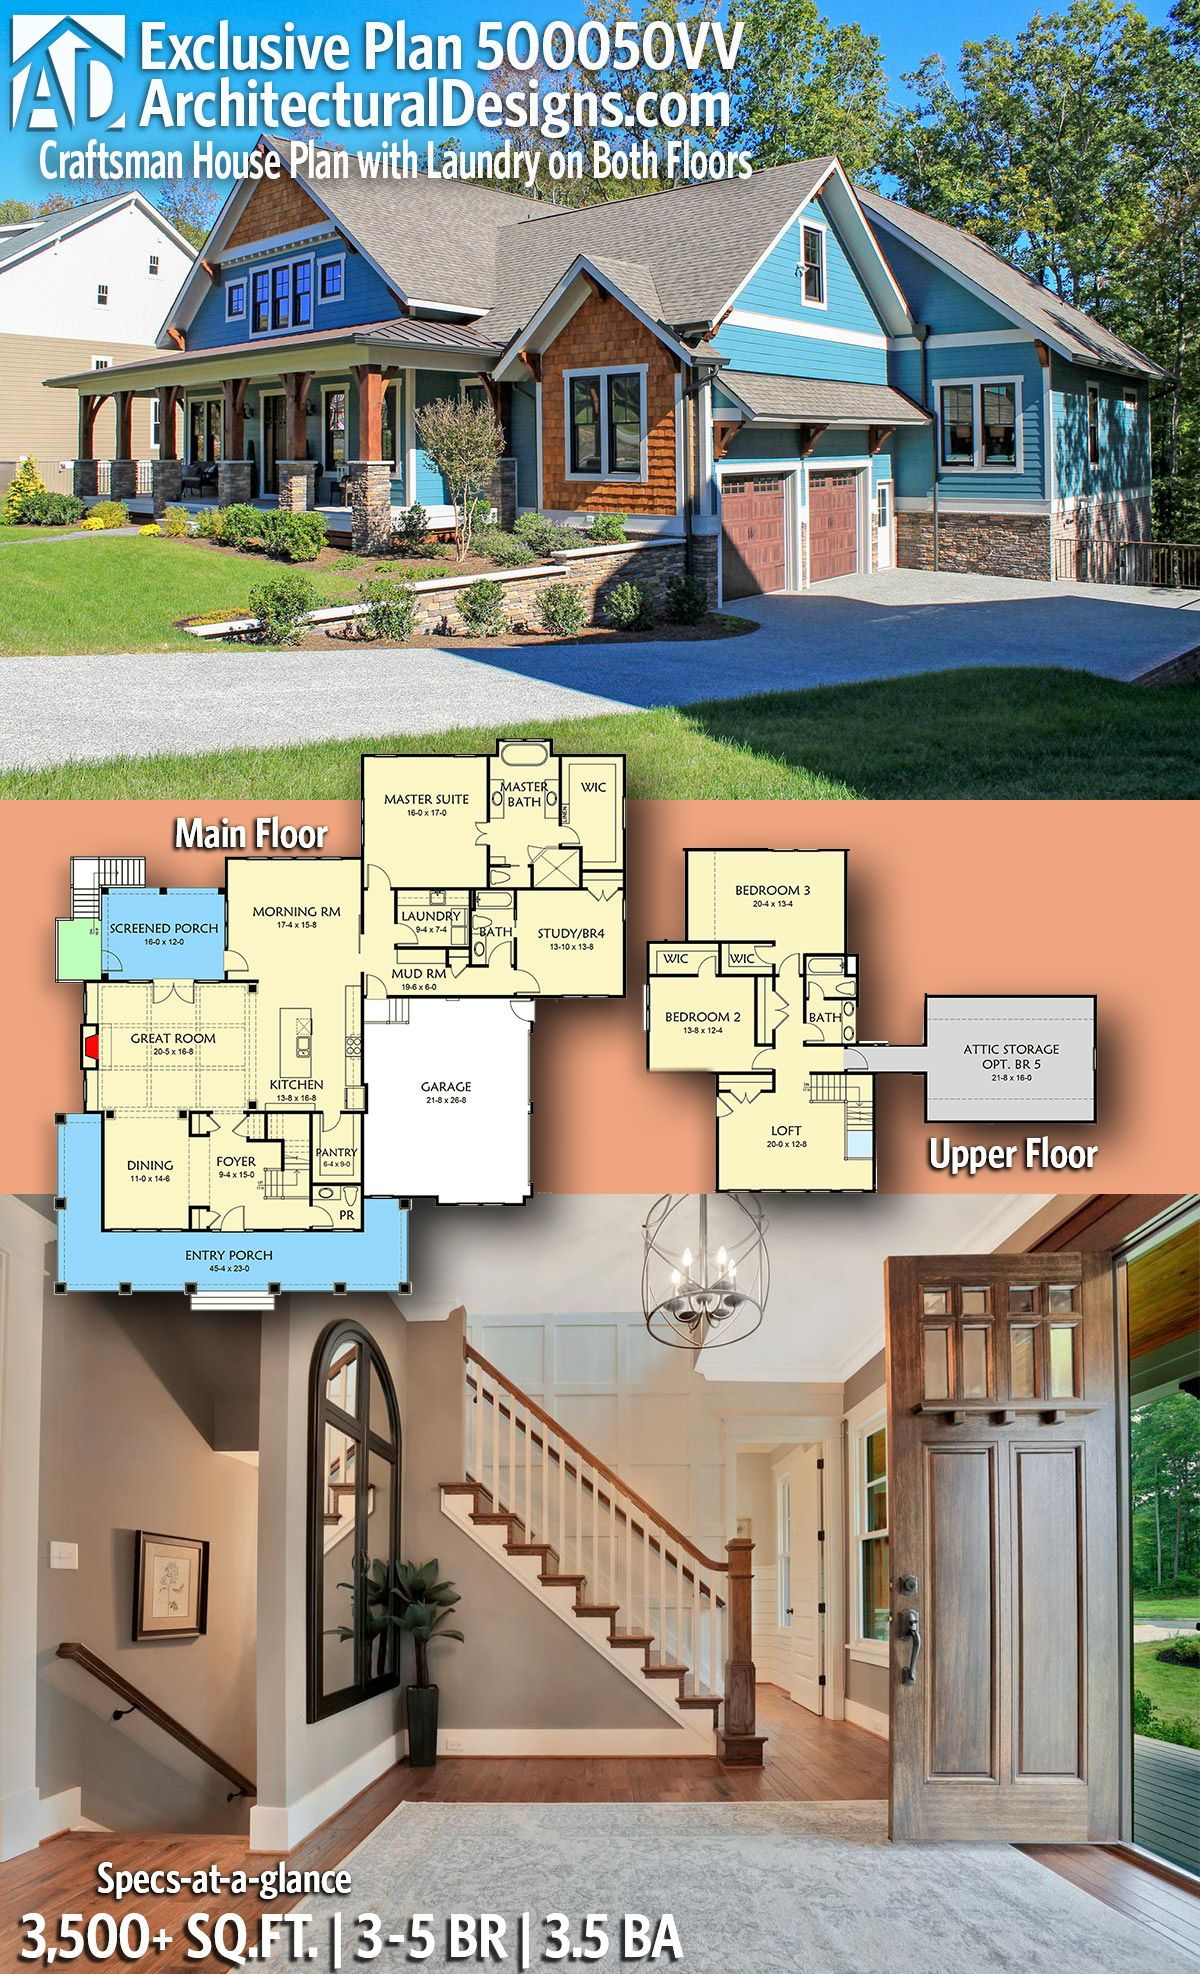 Introducing Architectural Designs Exclusive Country Craftsman Home Plan 500050vv With 3 5 Bedrooms 3 Full B Craftsman House Plans Craftsman House House Plans